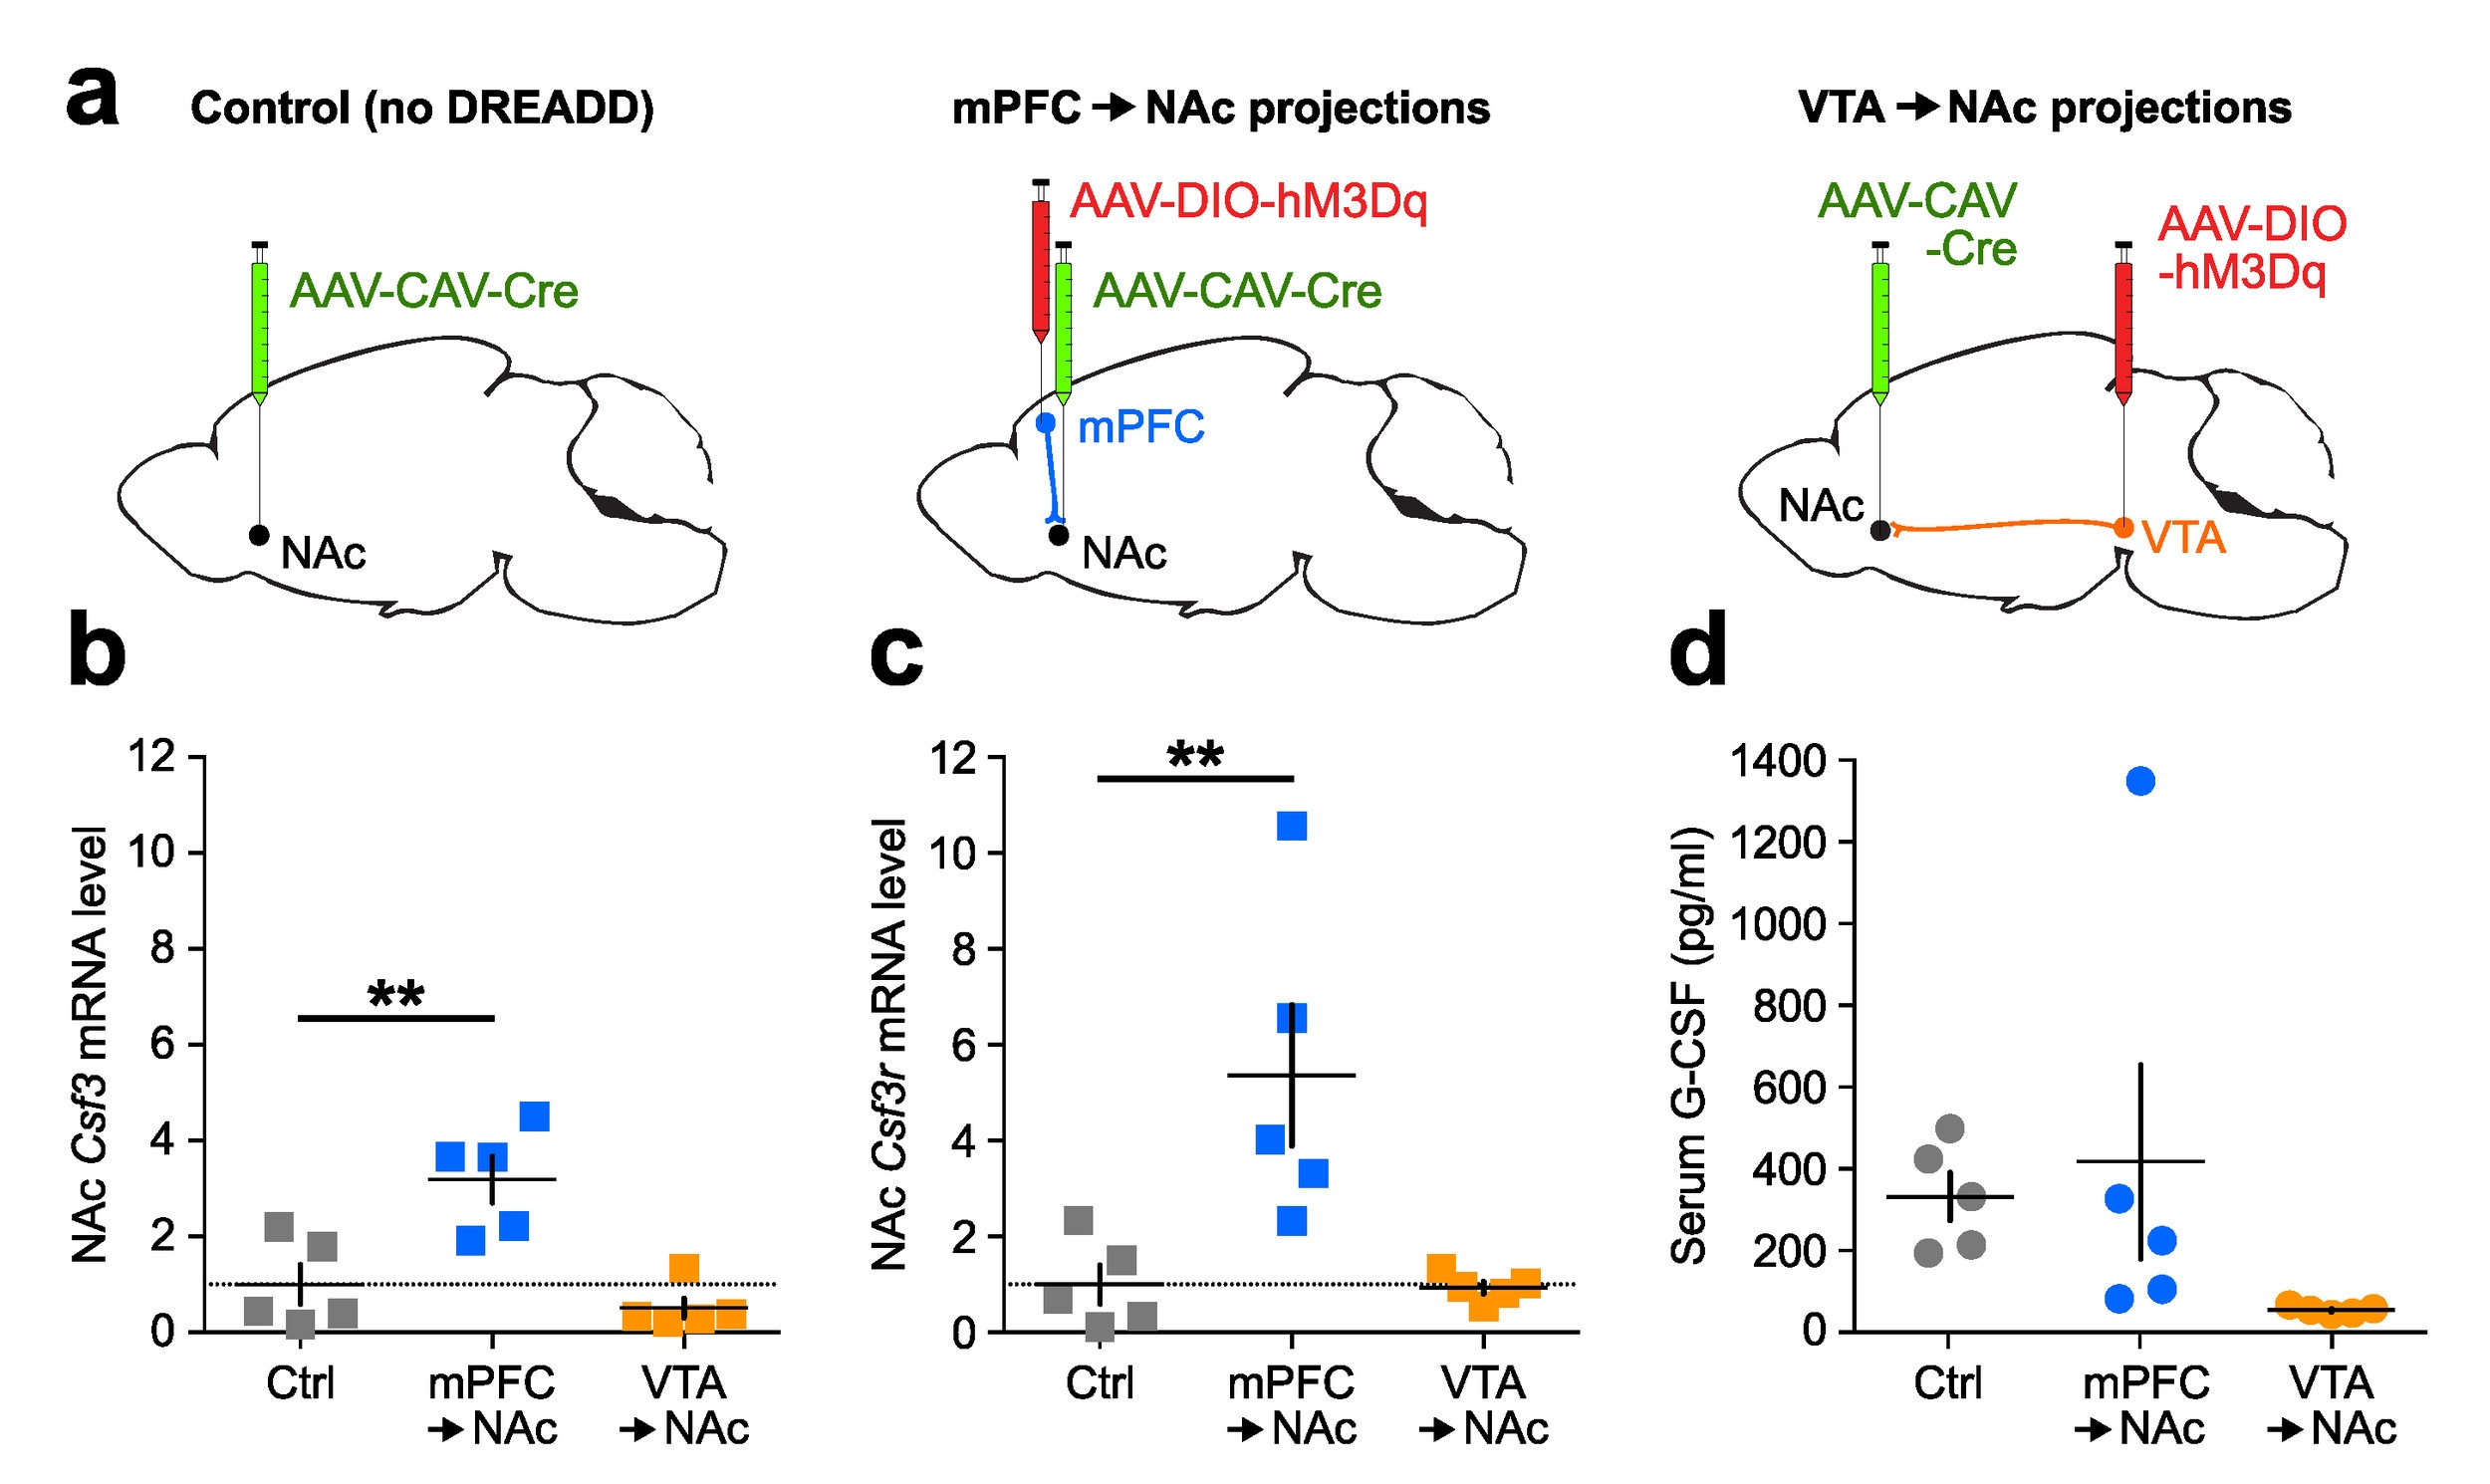 Fig. 5 G-CSF levels are increased by the selective activation of mPFC to NAc projections.   a  Experimental design of projection-specific DREADD stimulation. Mice were injected with a retrograde traveling CAV2-Cre virus in the NAc and a Cre-dependent hM3Dq-DREADD virus in either the mPFC or the VTA to allow for the specific stimulation of either mPFC to NAc or VTA to NAc.  b  Csf3 (G-CSF) mRNA levels in the NAc were increased after mPFC to NAc stimulation.  c  Csf3r (G-CSFR) mRNA levels in the NAc were increased only after mPFC to NAc stimulation.  d  Peripheral G-CSF serum levels were not affected by stimulation.